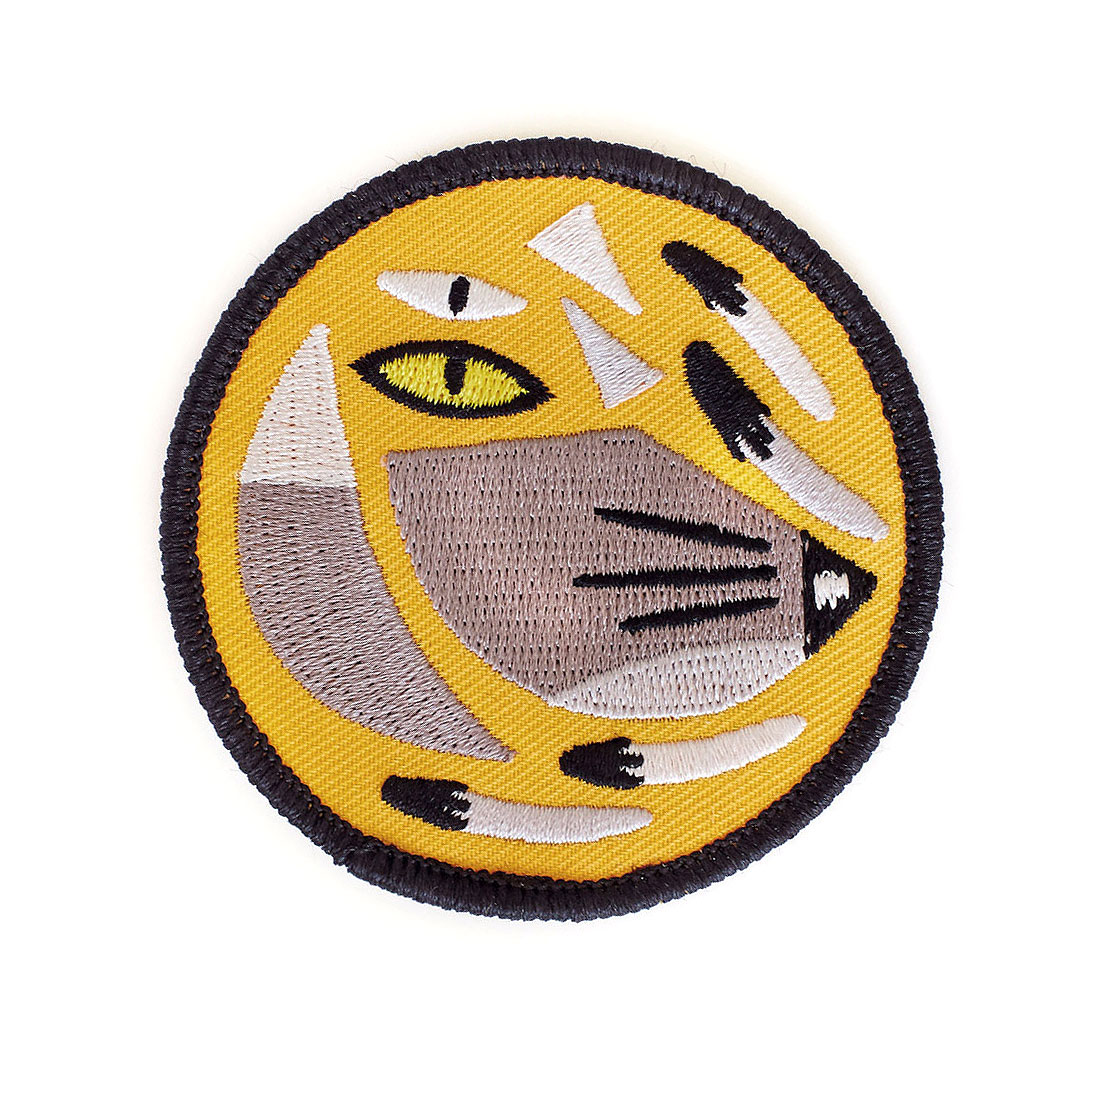 Thought Fox embroidered patch